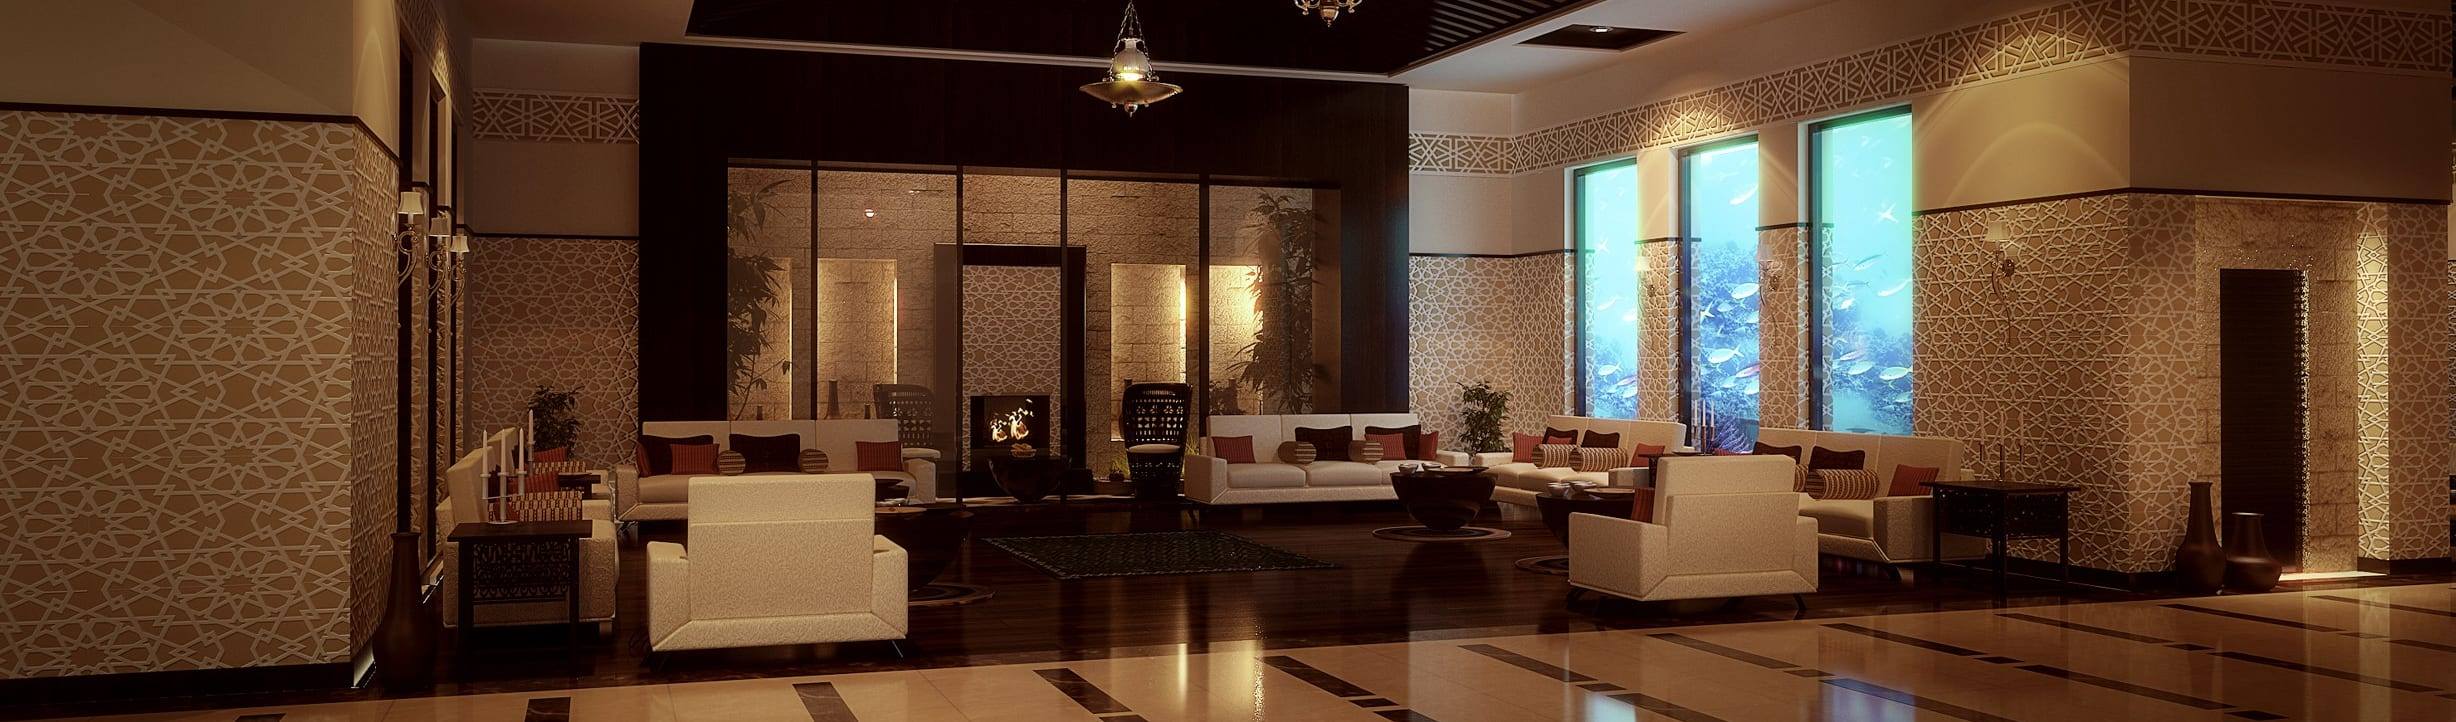 SPACES Architects Planners Engineers Architects in Amman homify